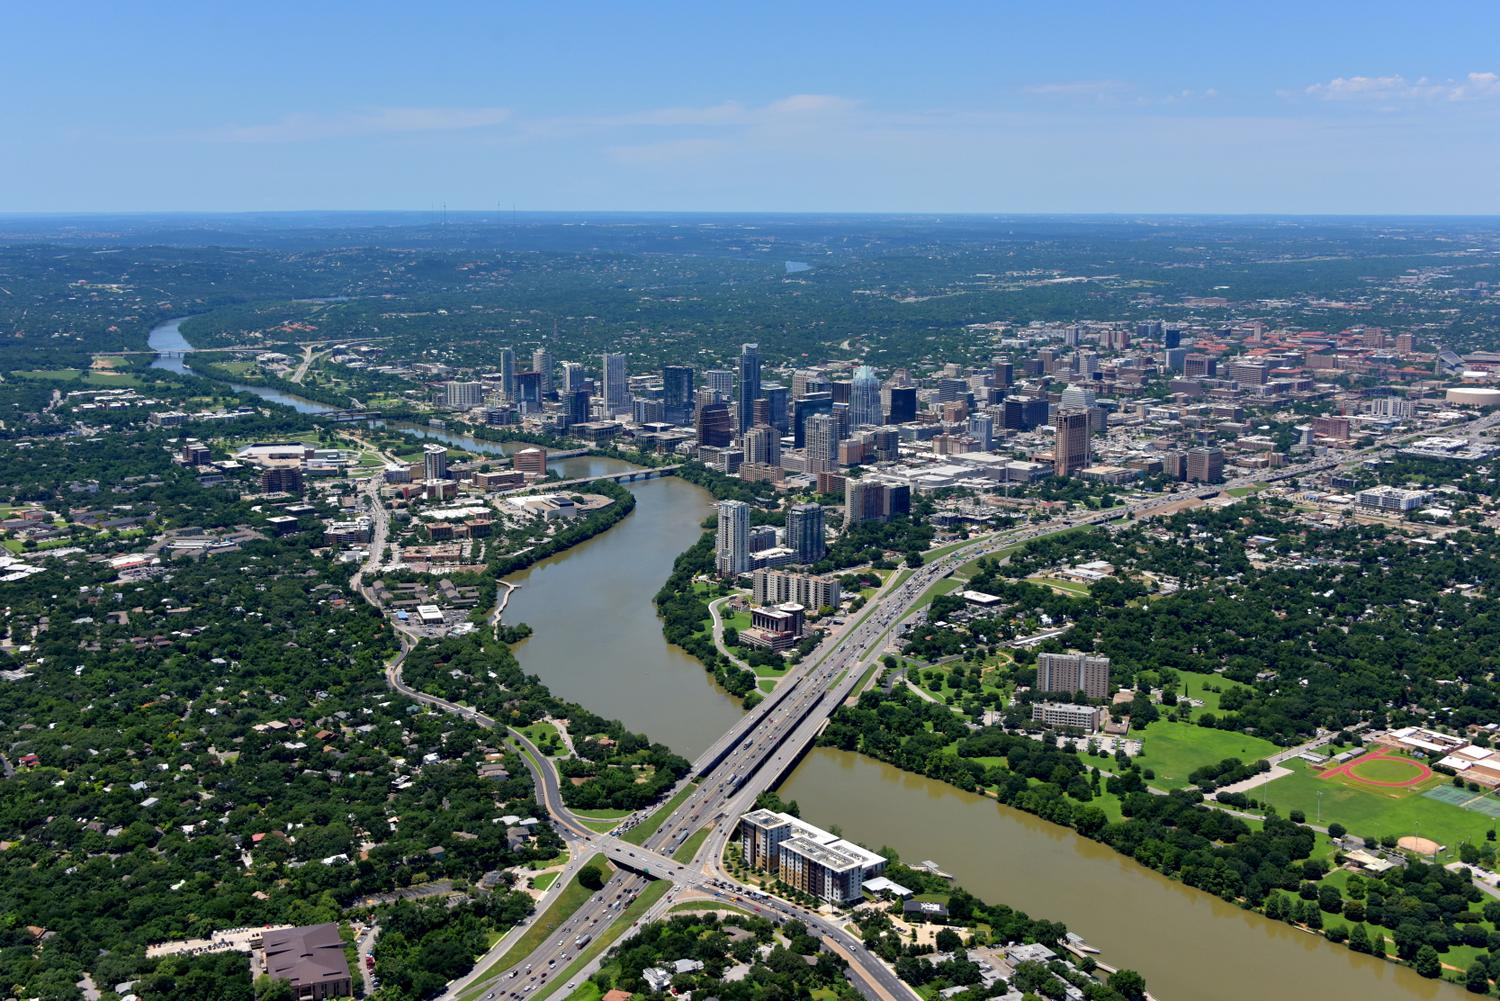 CBD Skyline, Austin, Texas - Austin Aerial Photographer - Austin Drone Video - Austin, TX